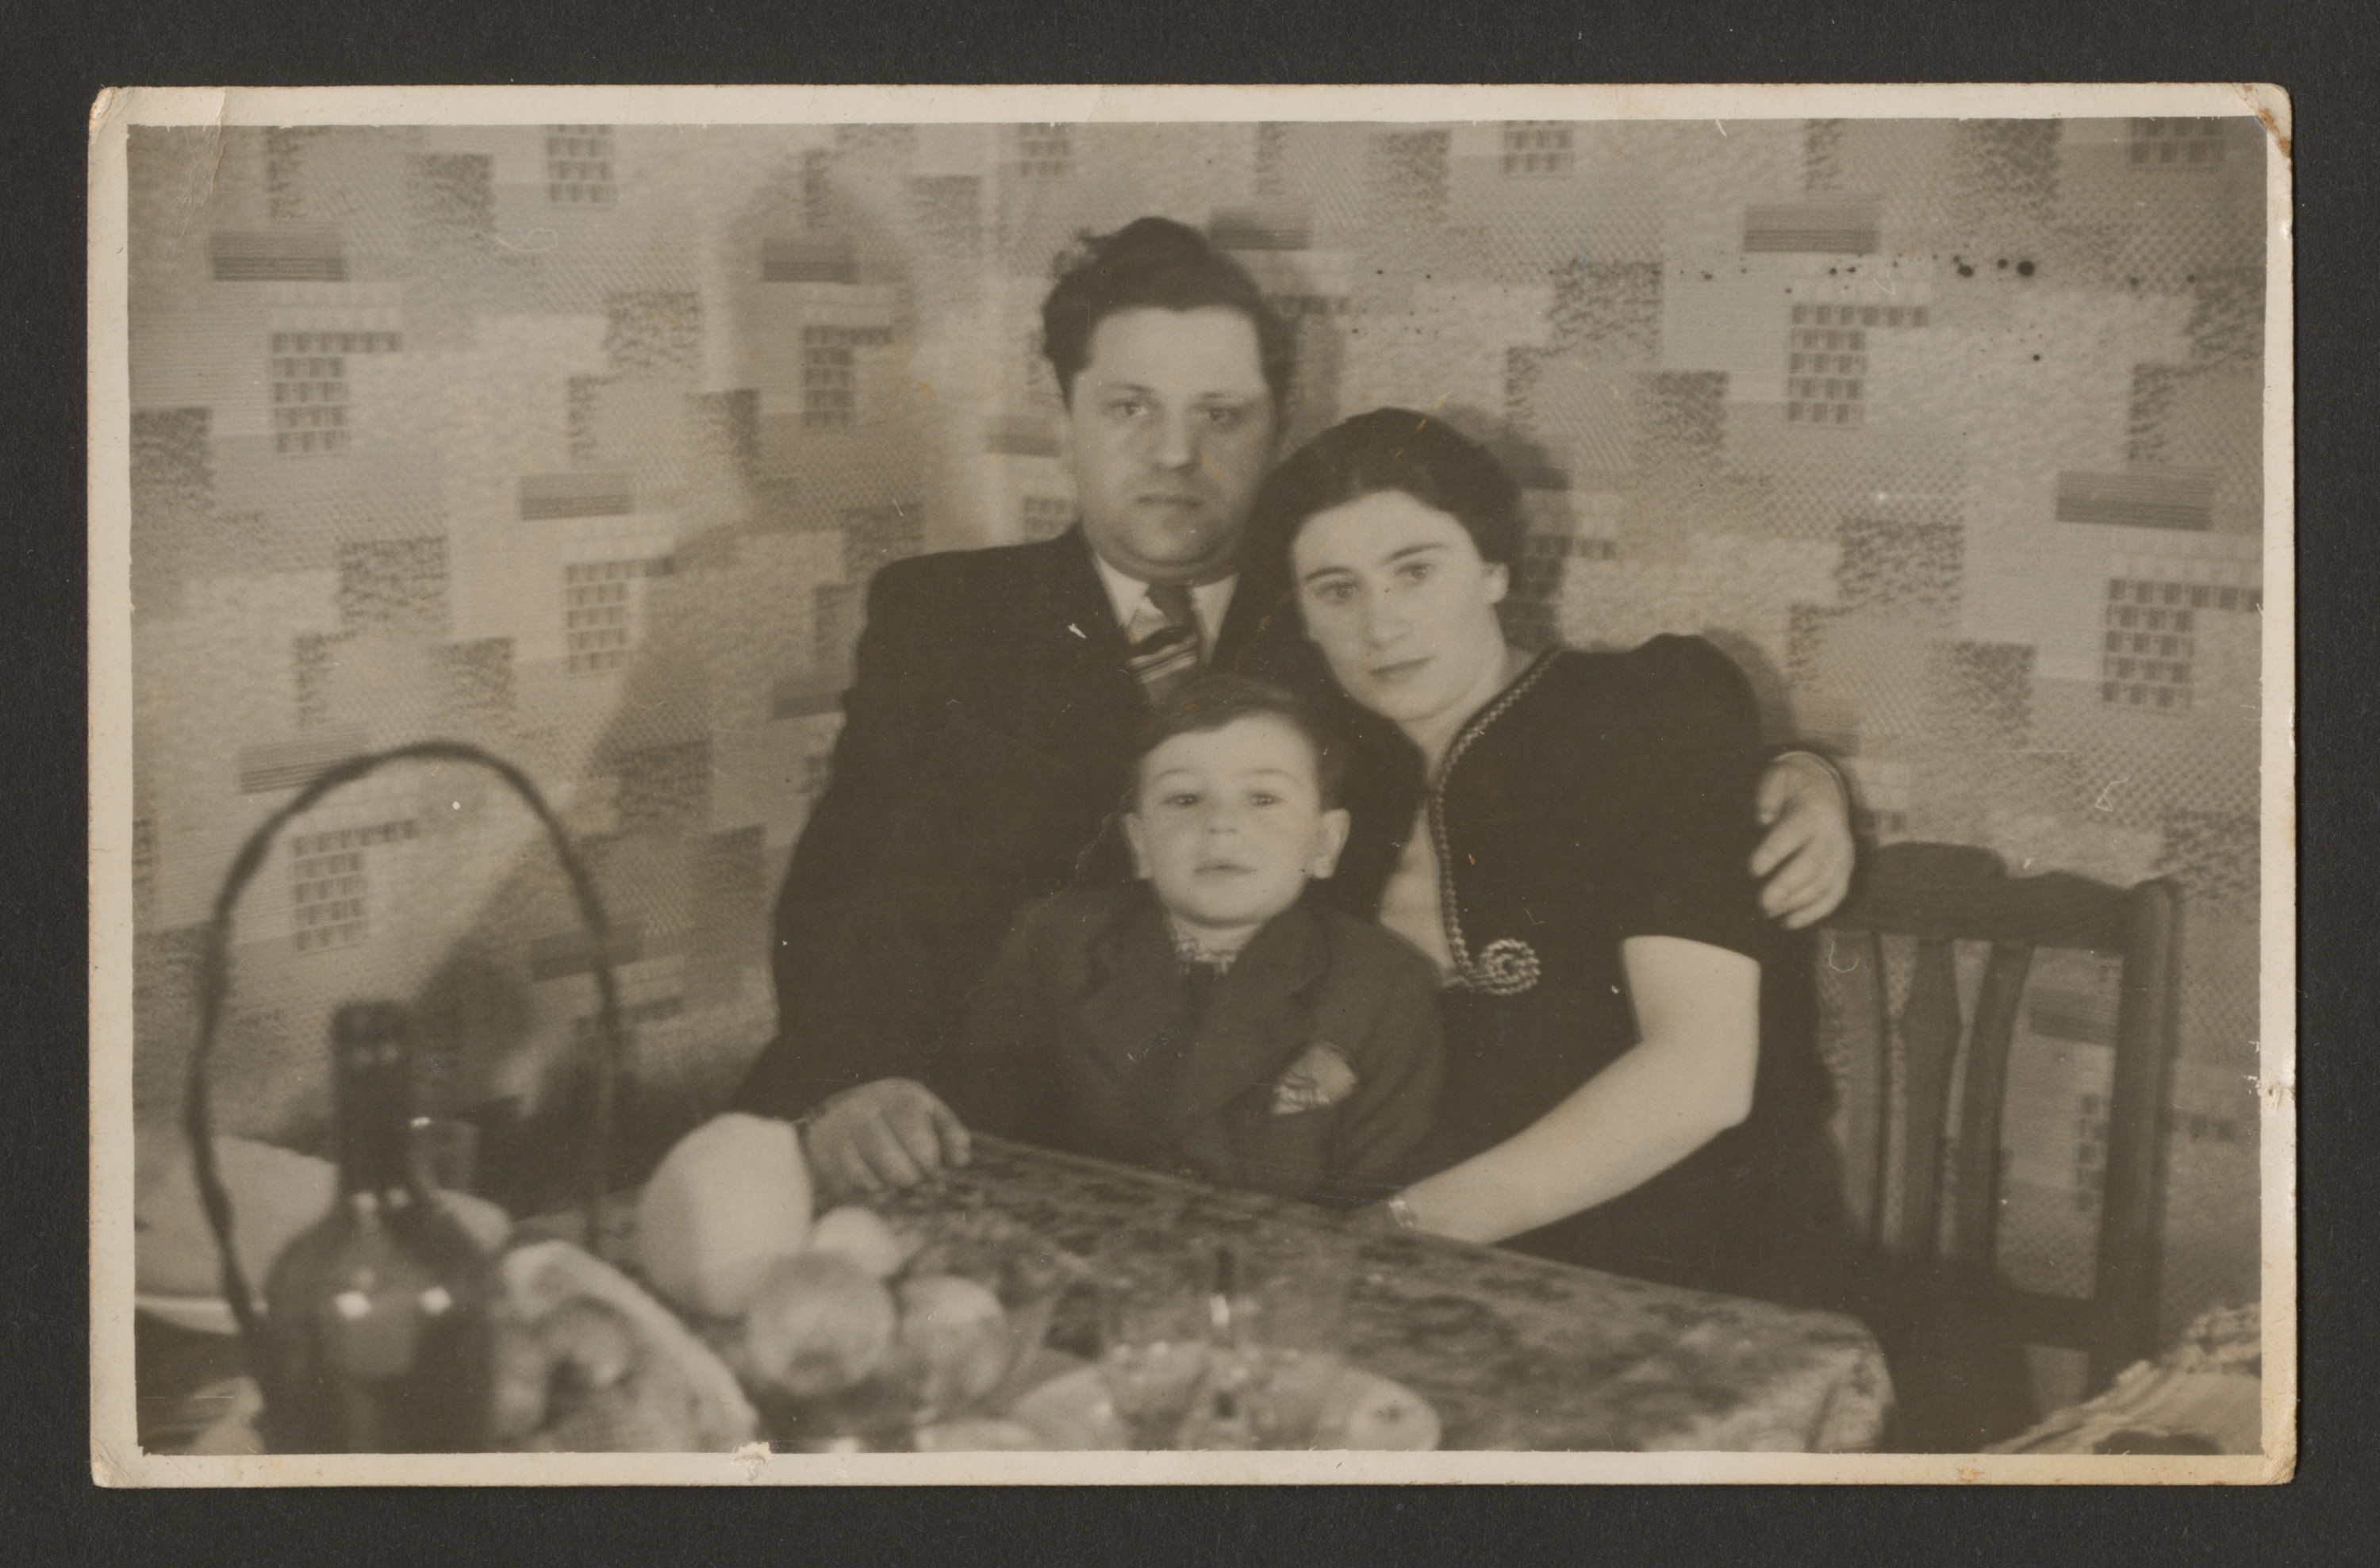 A Belgian Jewish family sits together at a dining tabe.  Pictured are Leon and Maria Srebnik, with their son Charles.